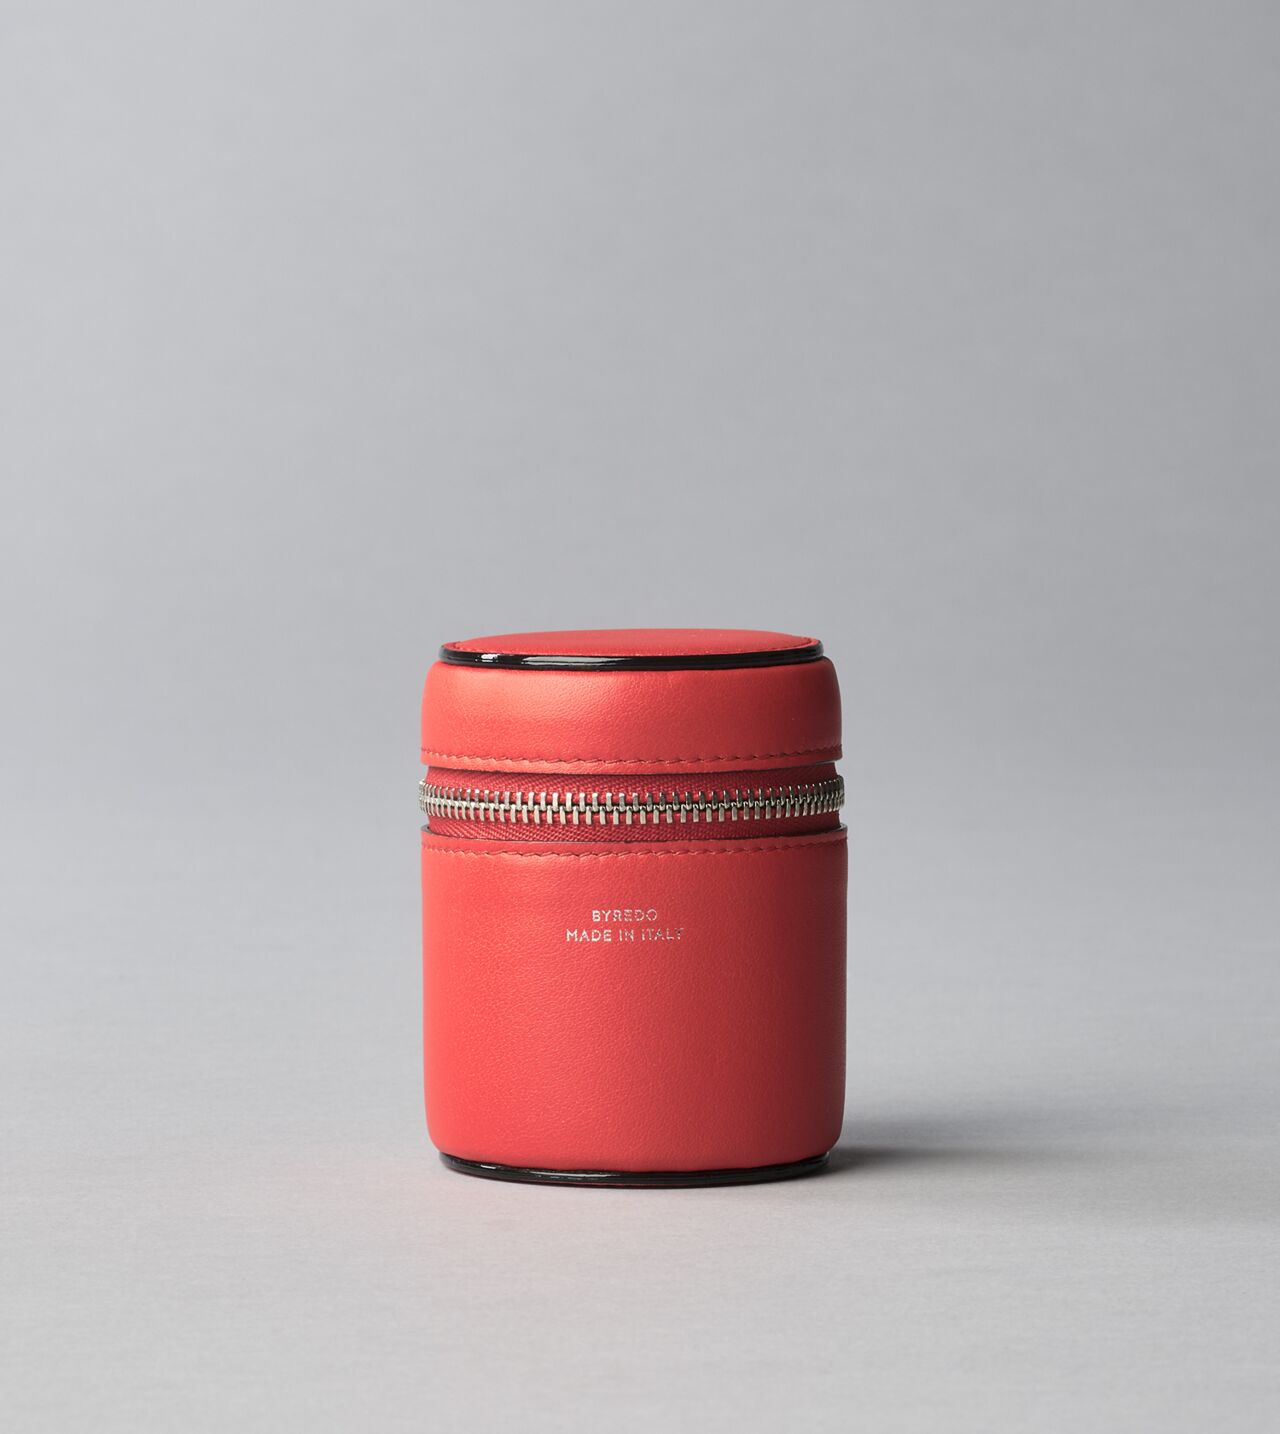 Picture of Byredo Candle holder 70g in Bright red leather